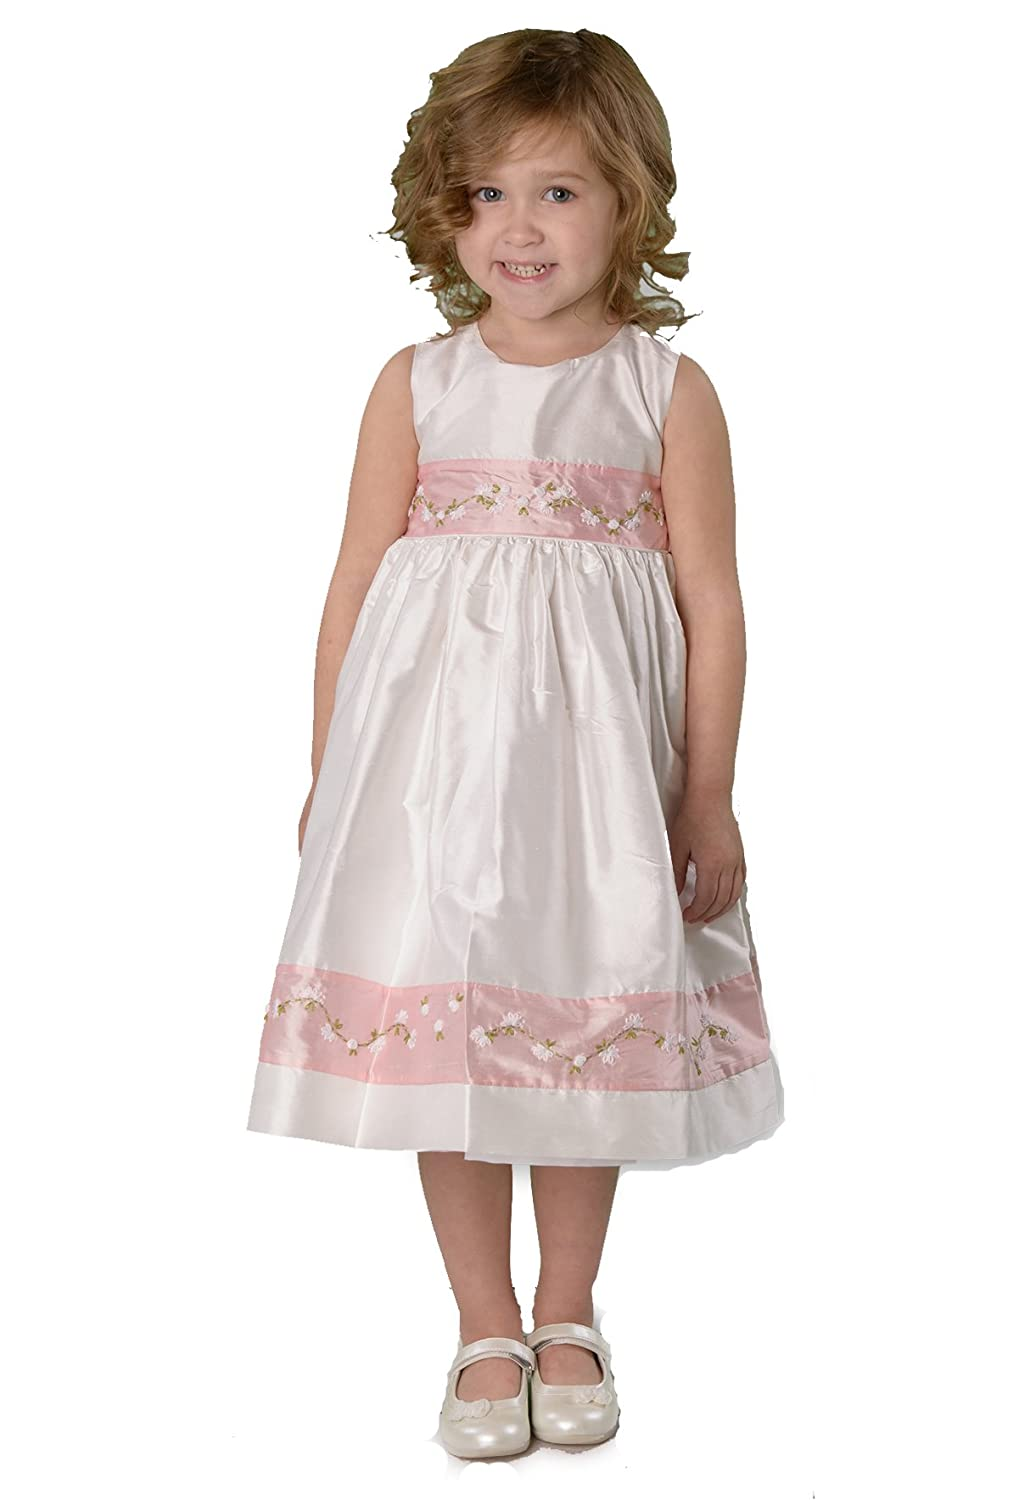 Strasburg Children Girls Lucy Silk Dress Southern Flower Girl Party Dress Easter